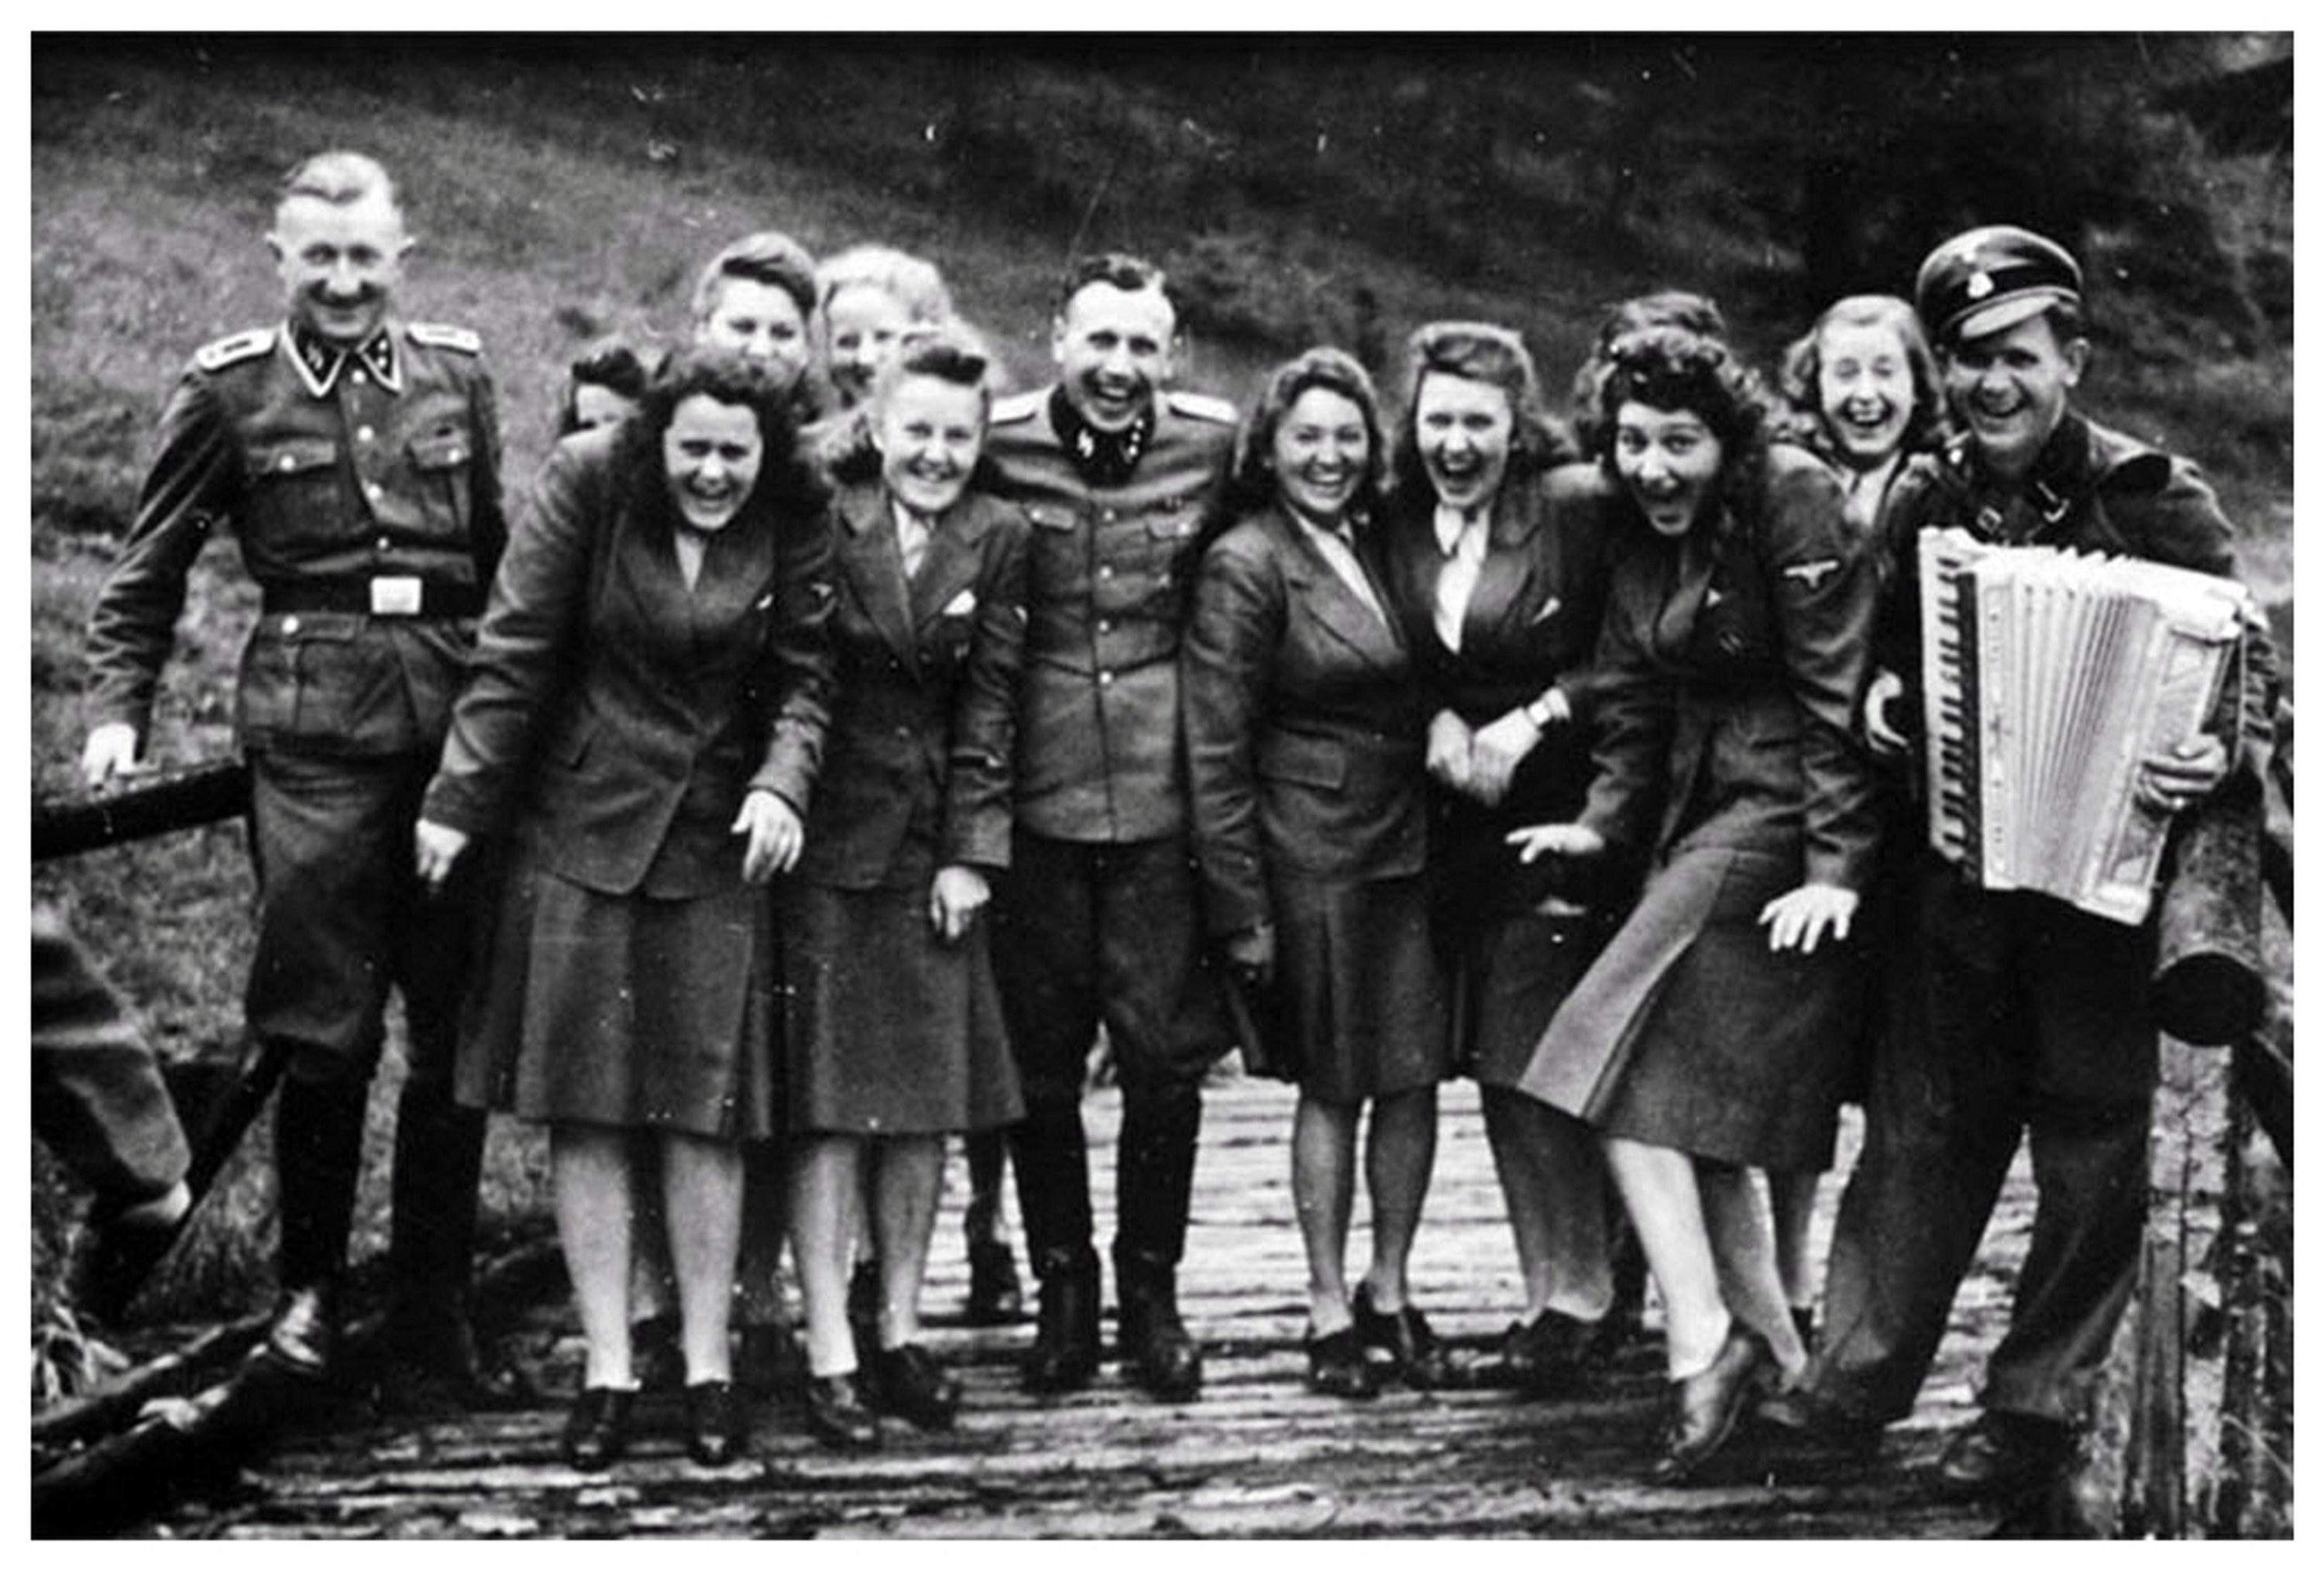 SS personnel posing for a photo